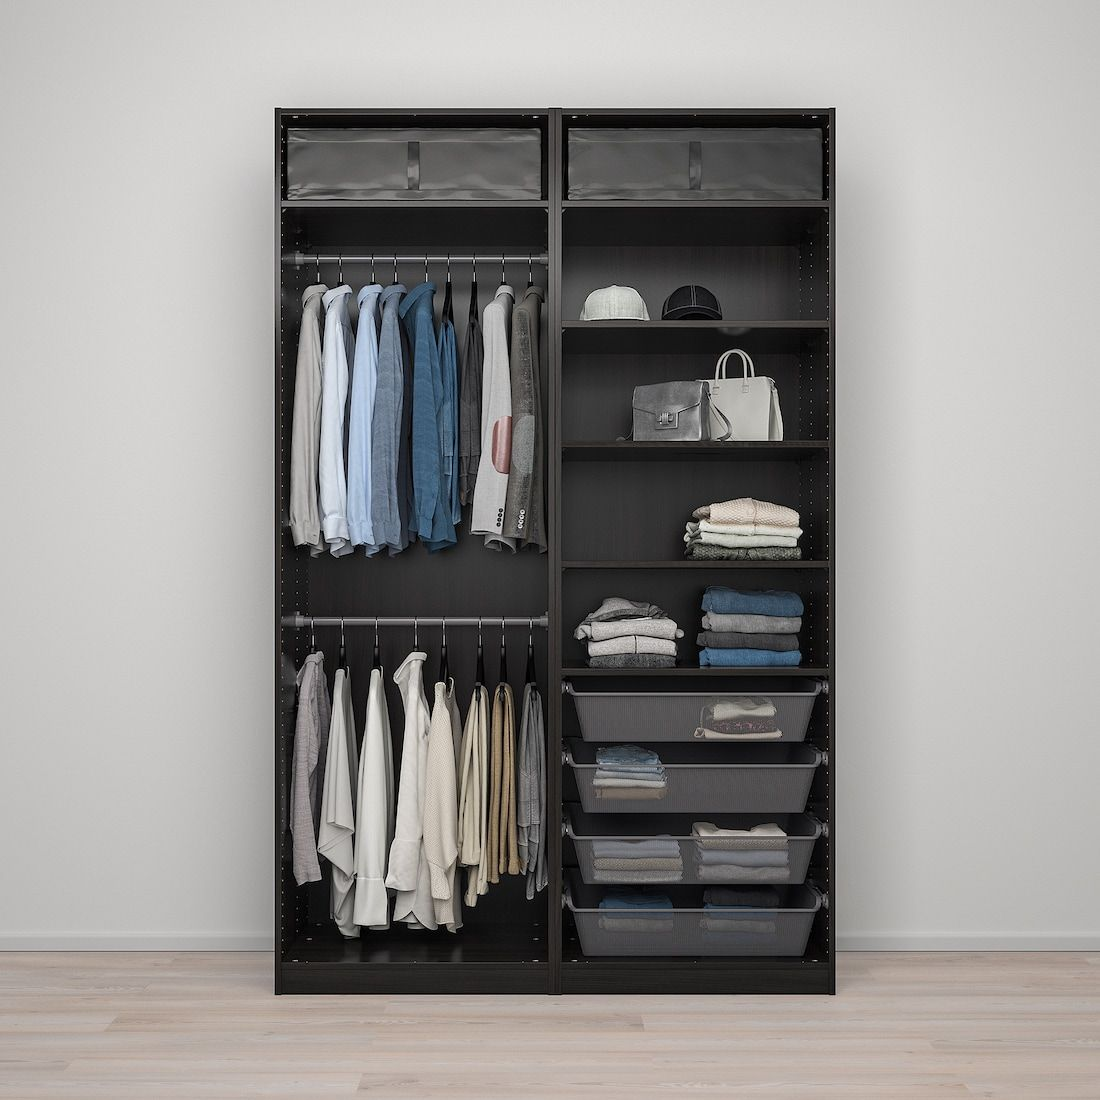 Pax Mehamn Sekken Wardrobe Combination Black Brown Frosted Glass 59x26x93 1 8 Ikea In 2020 Ikea Pax Frosted Glass Glass Wardrobe Doors